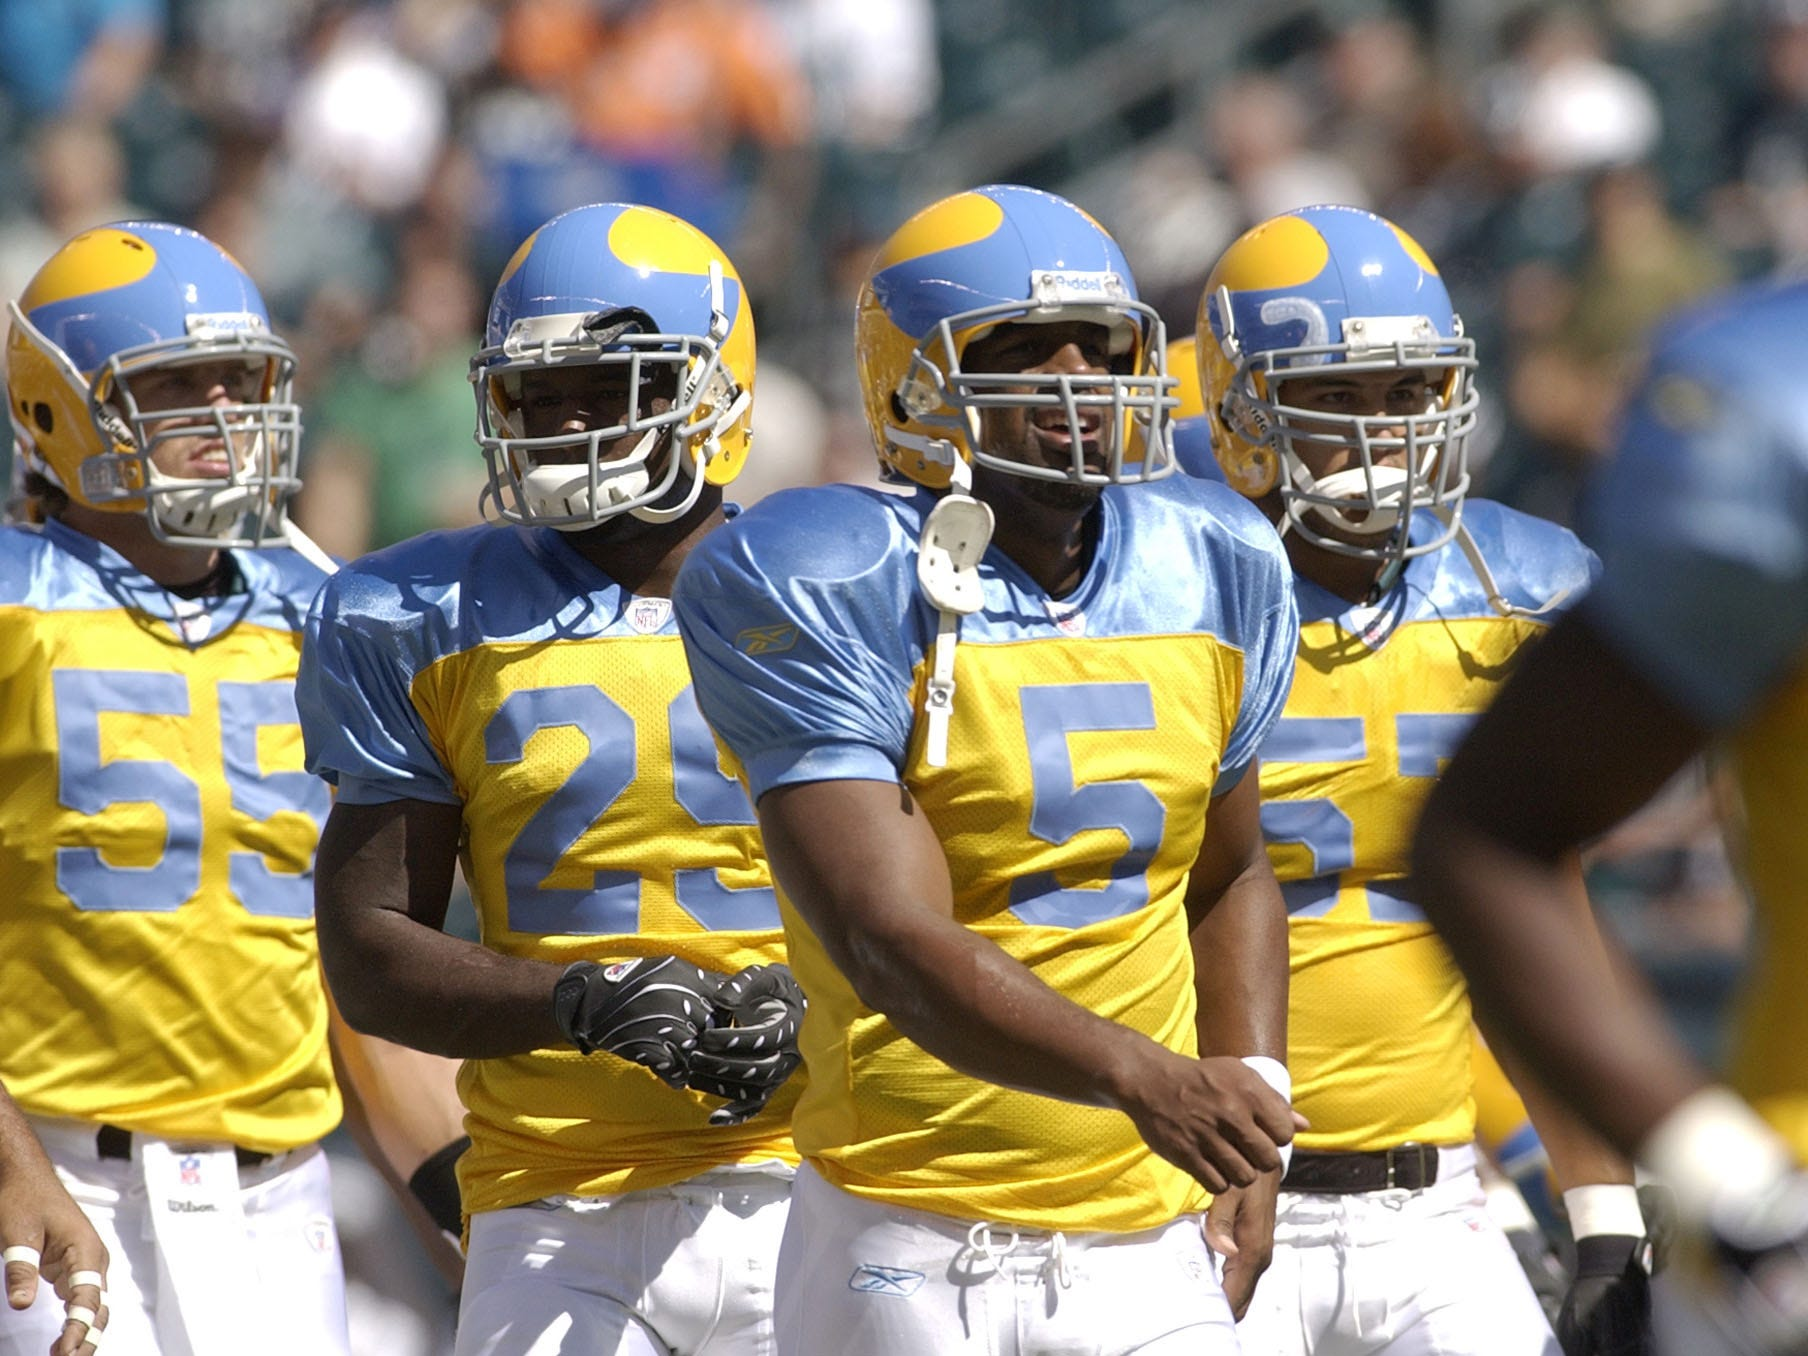 Quarterback Donovan McNabb (No. 5) and teammates were not stylin' in yellow-and-satin-blue Eagles uniforms in 2007